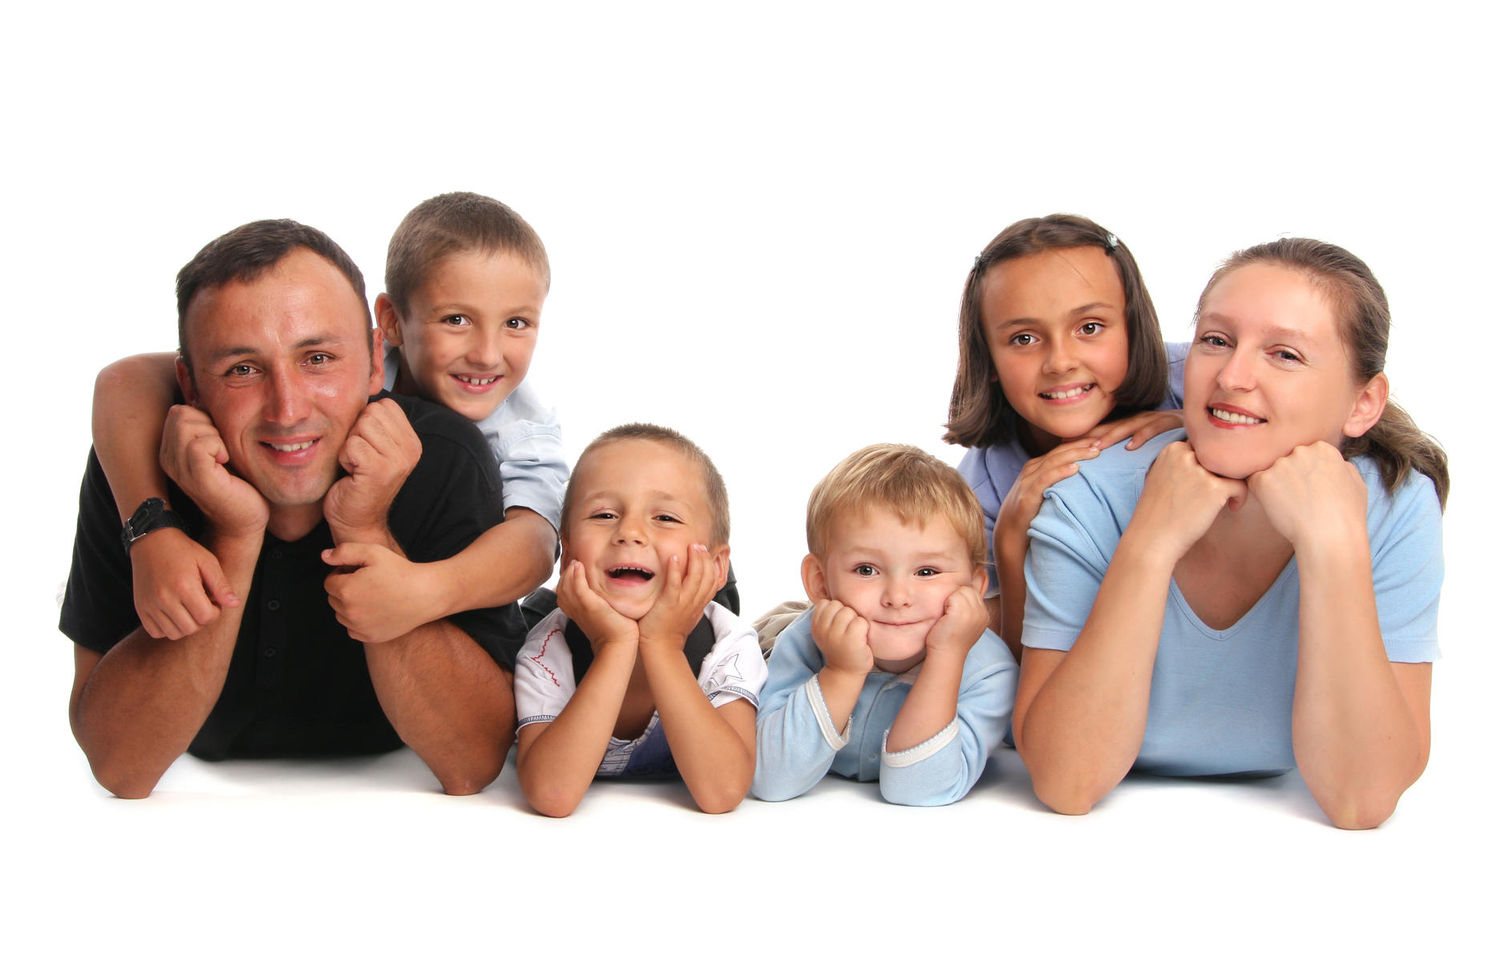 Parenting styles and child development